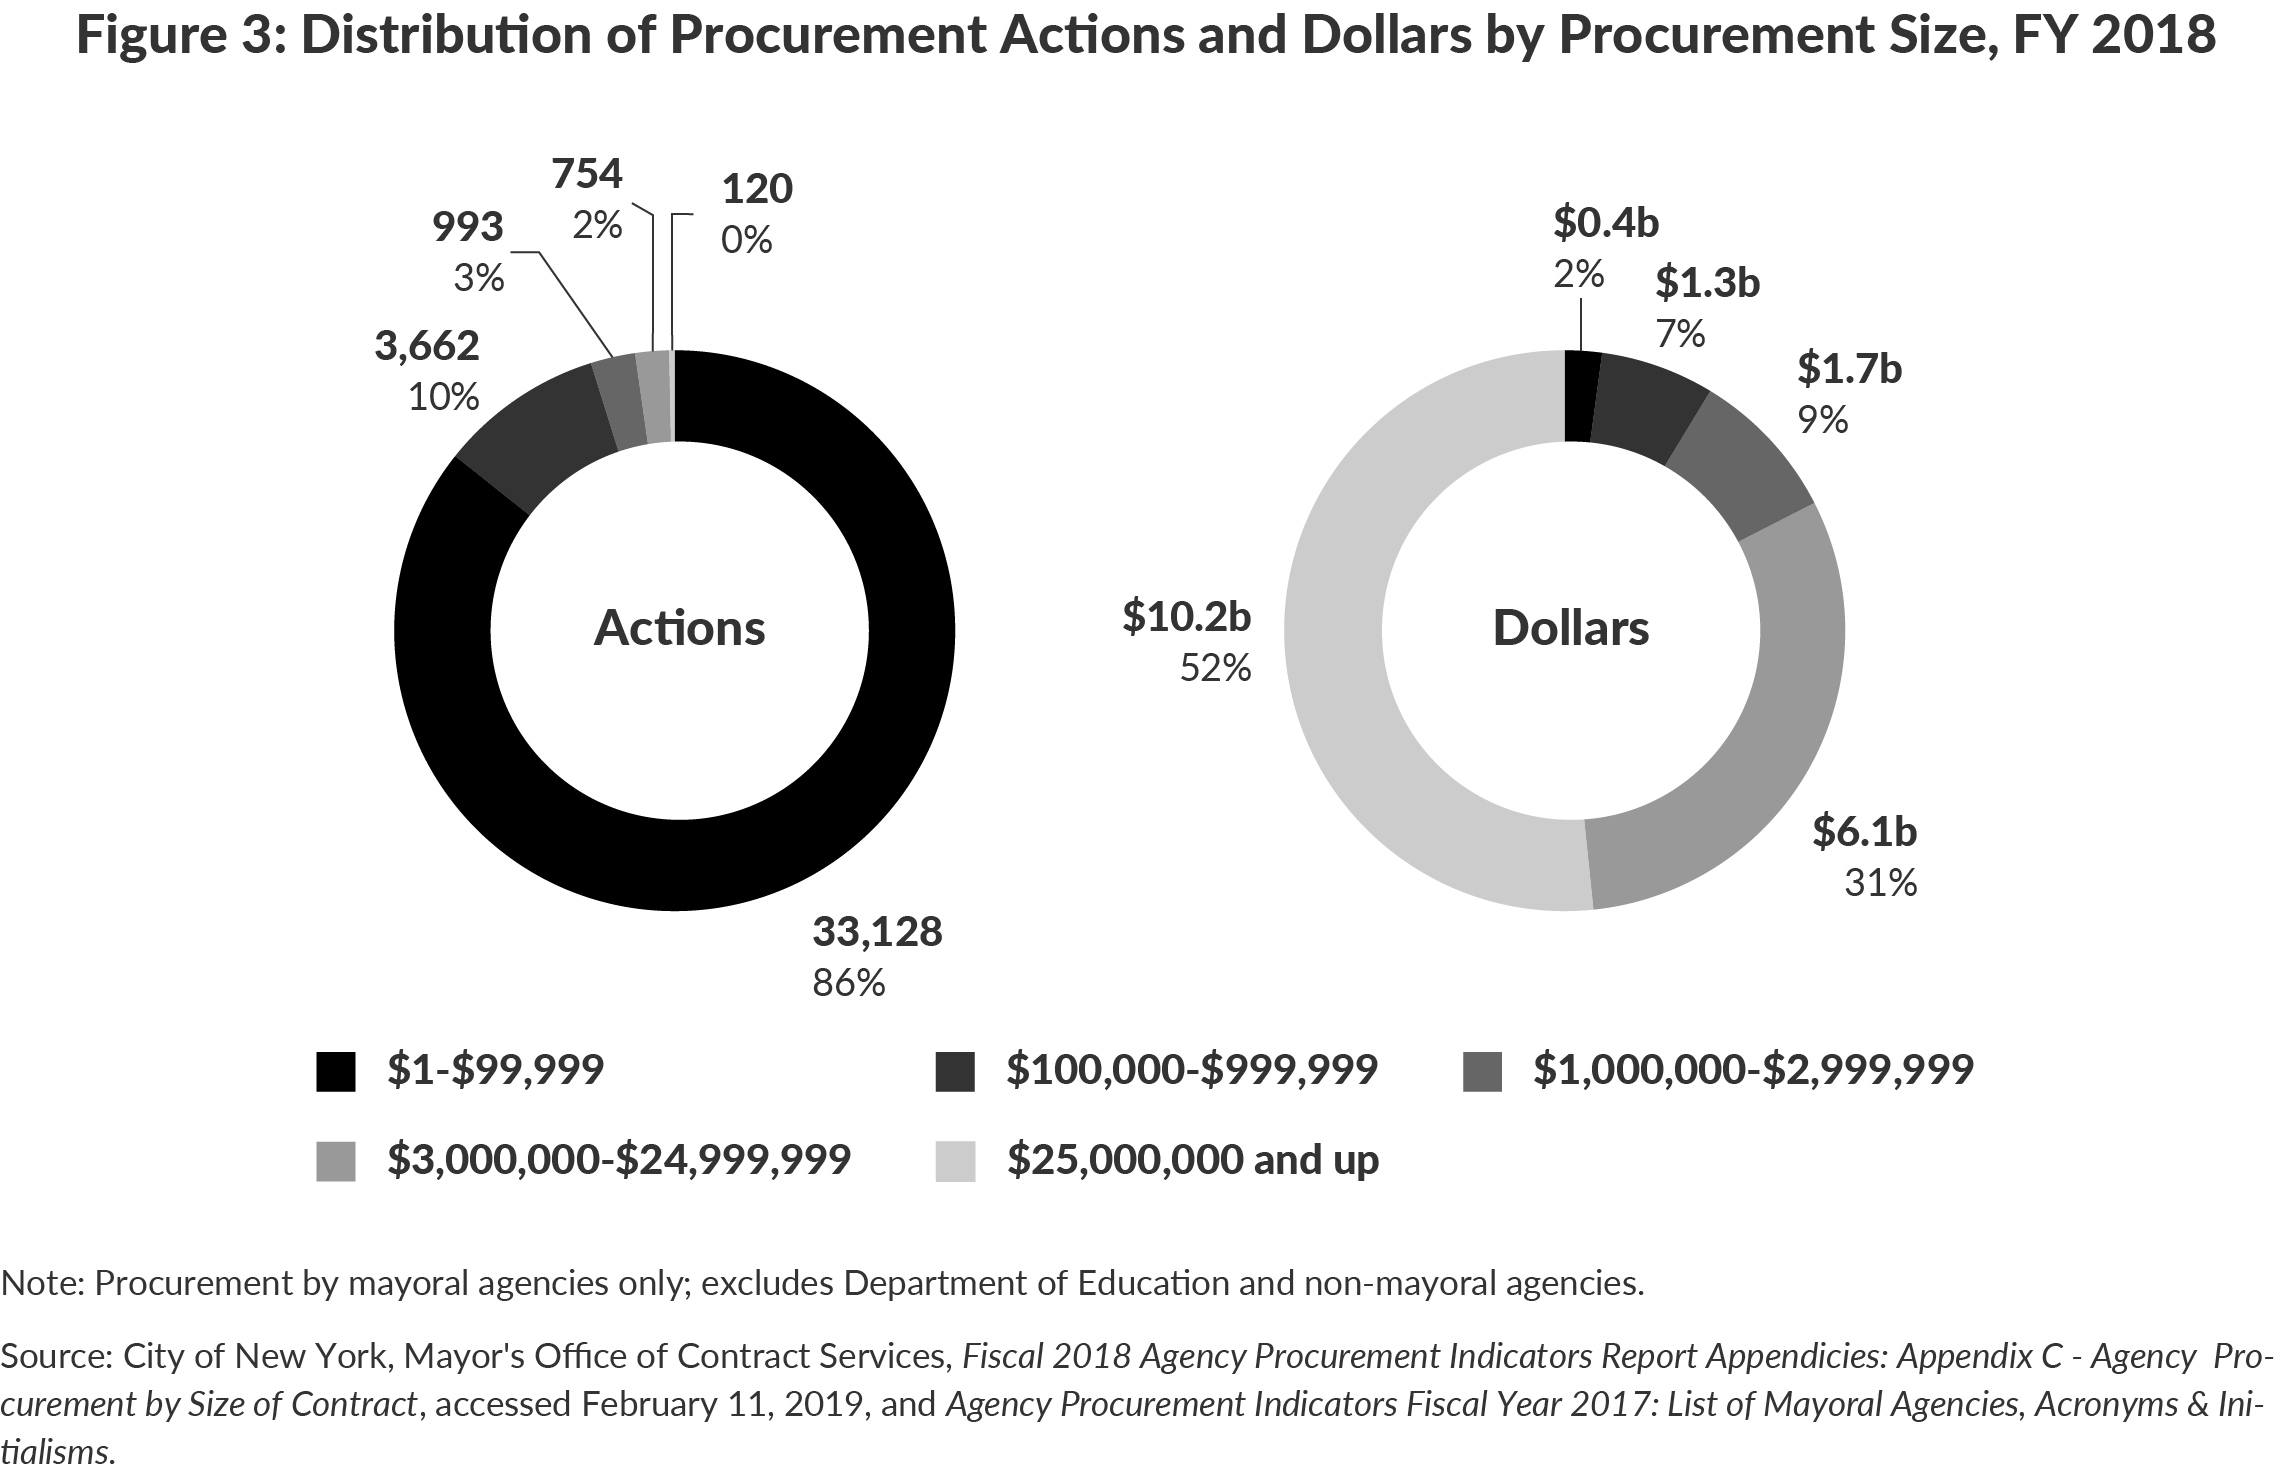 Figure 3: Distribution of Procurement Actions and Dollars by Procurement Size, FY 2018